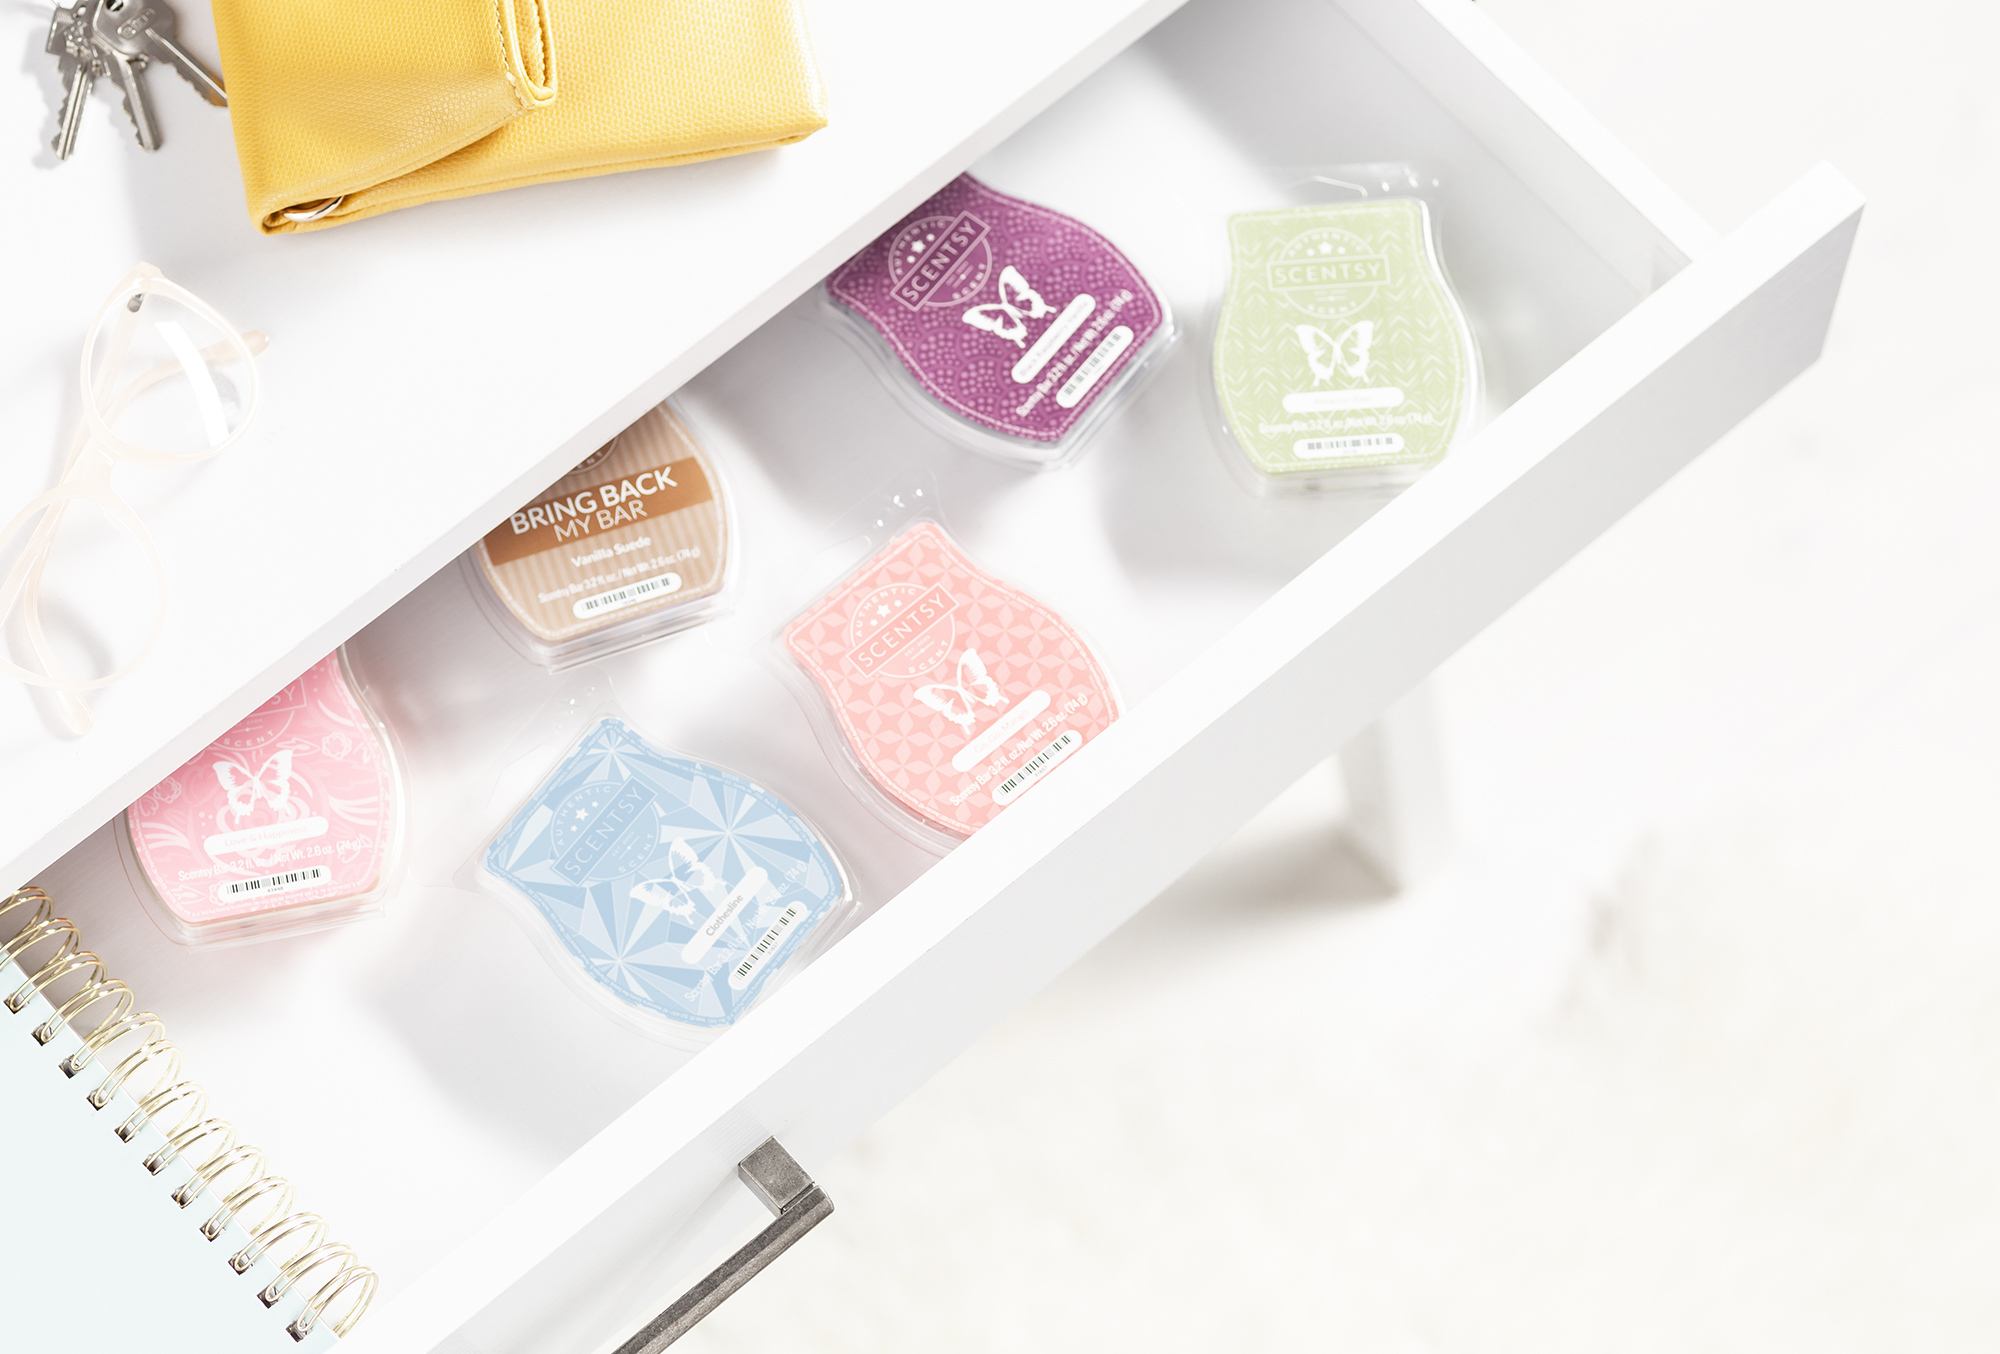 Scentsy clam shells in a open drawer